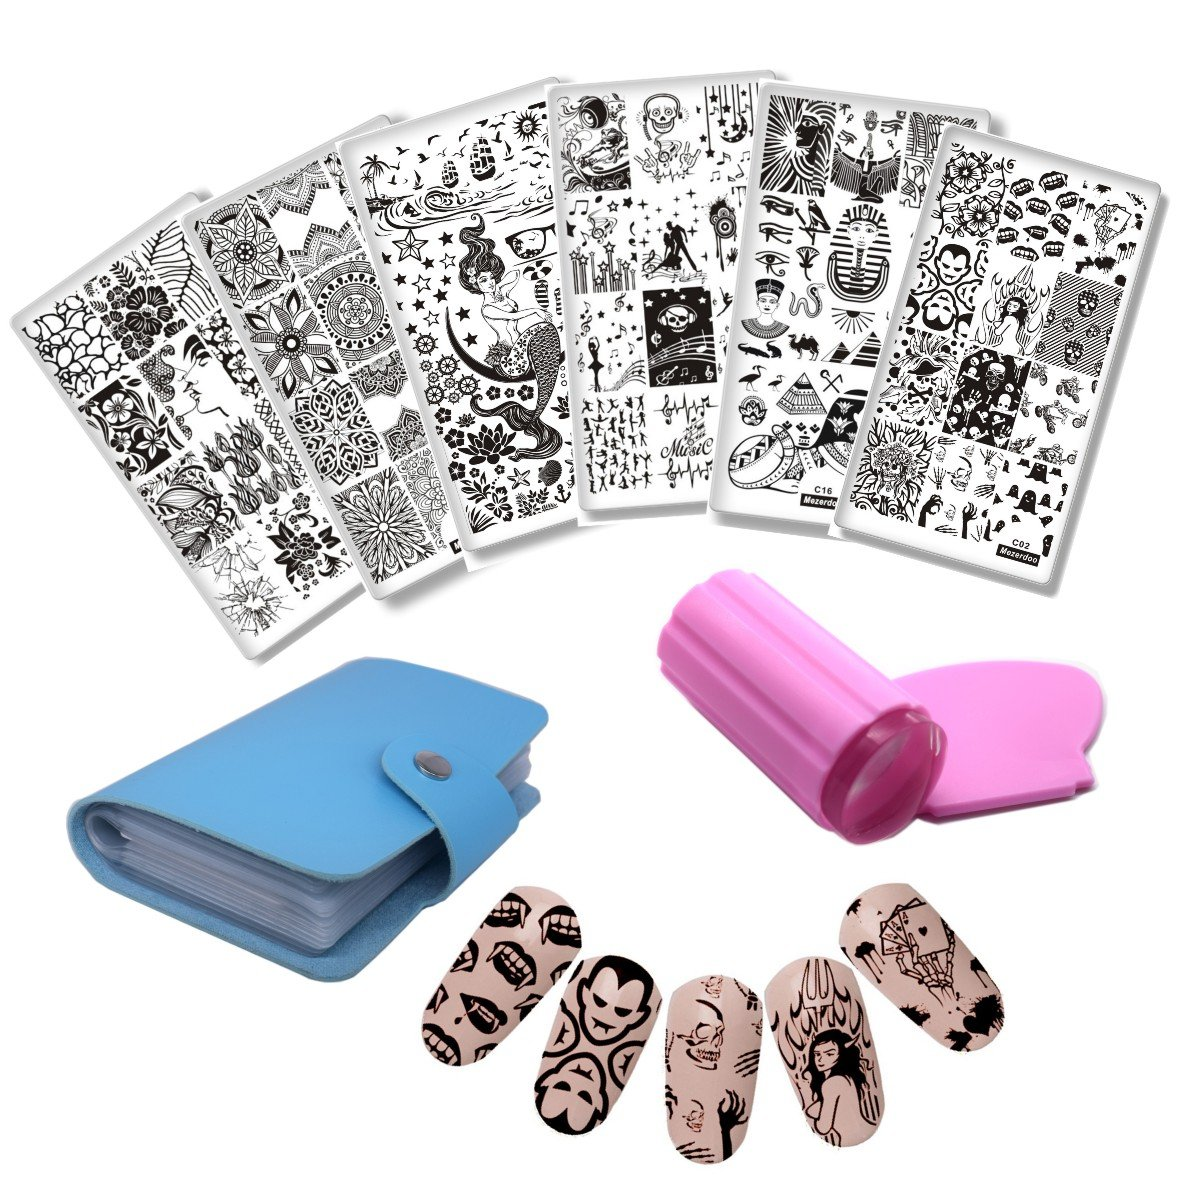 Mezerdoo 6pcs Vampire Nail Stamping Plates Skull Flower Leaf Image Stencil Nail Art Manicure Template Nail Stamp Tool with 1Pcs Stamper Kit + 1pcs Templates Bag Holder